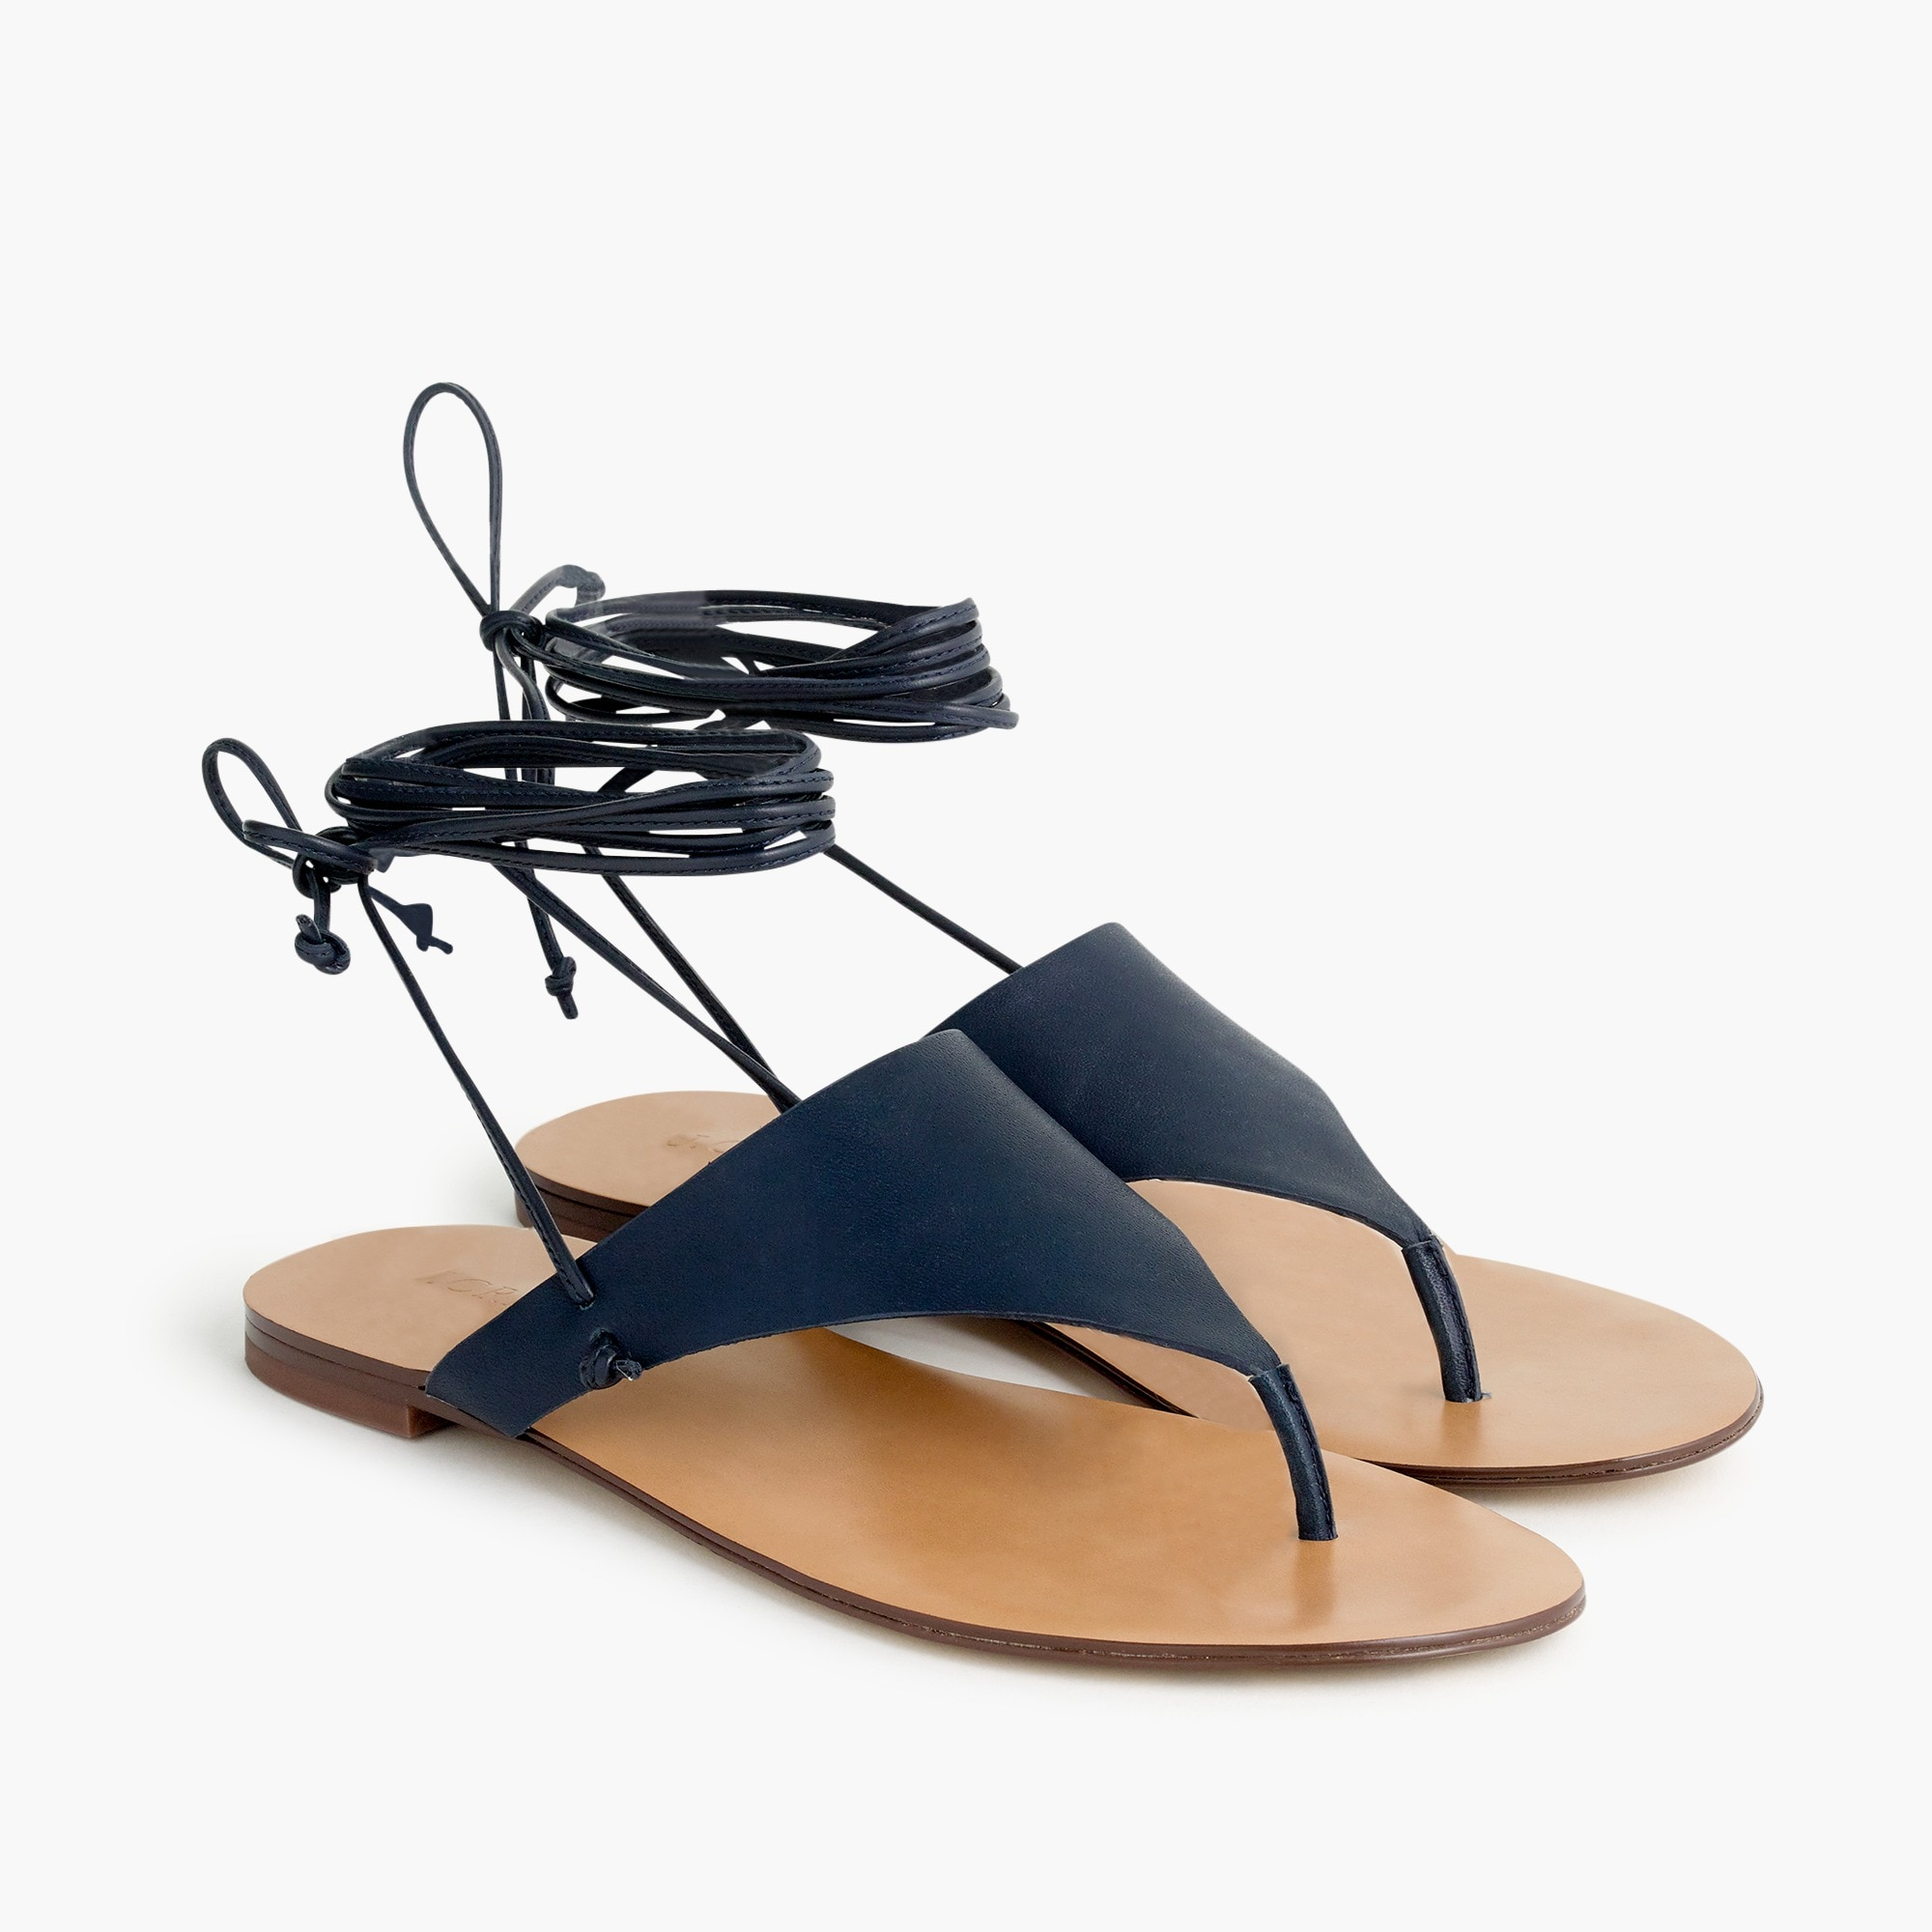 Ankle-tie thong sandals in leather women new arrivals c